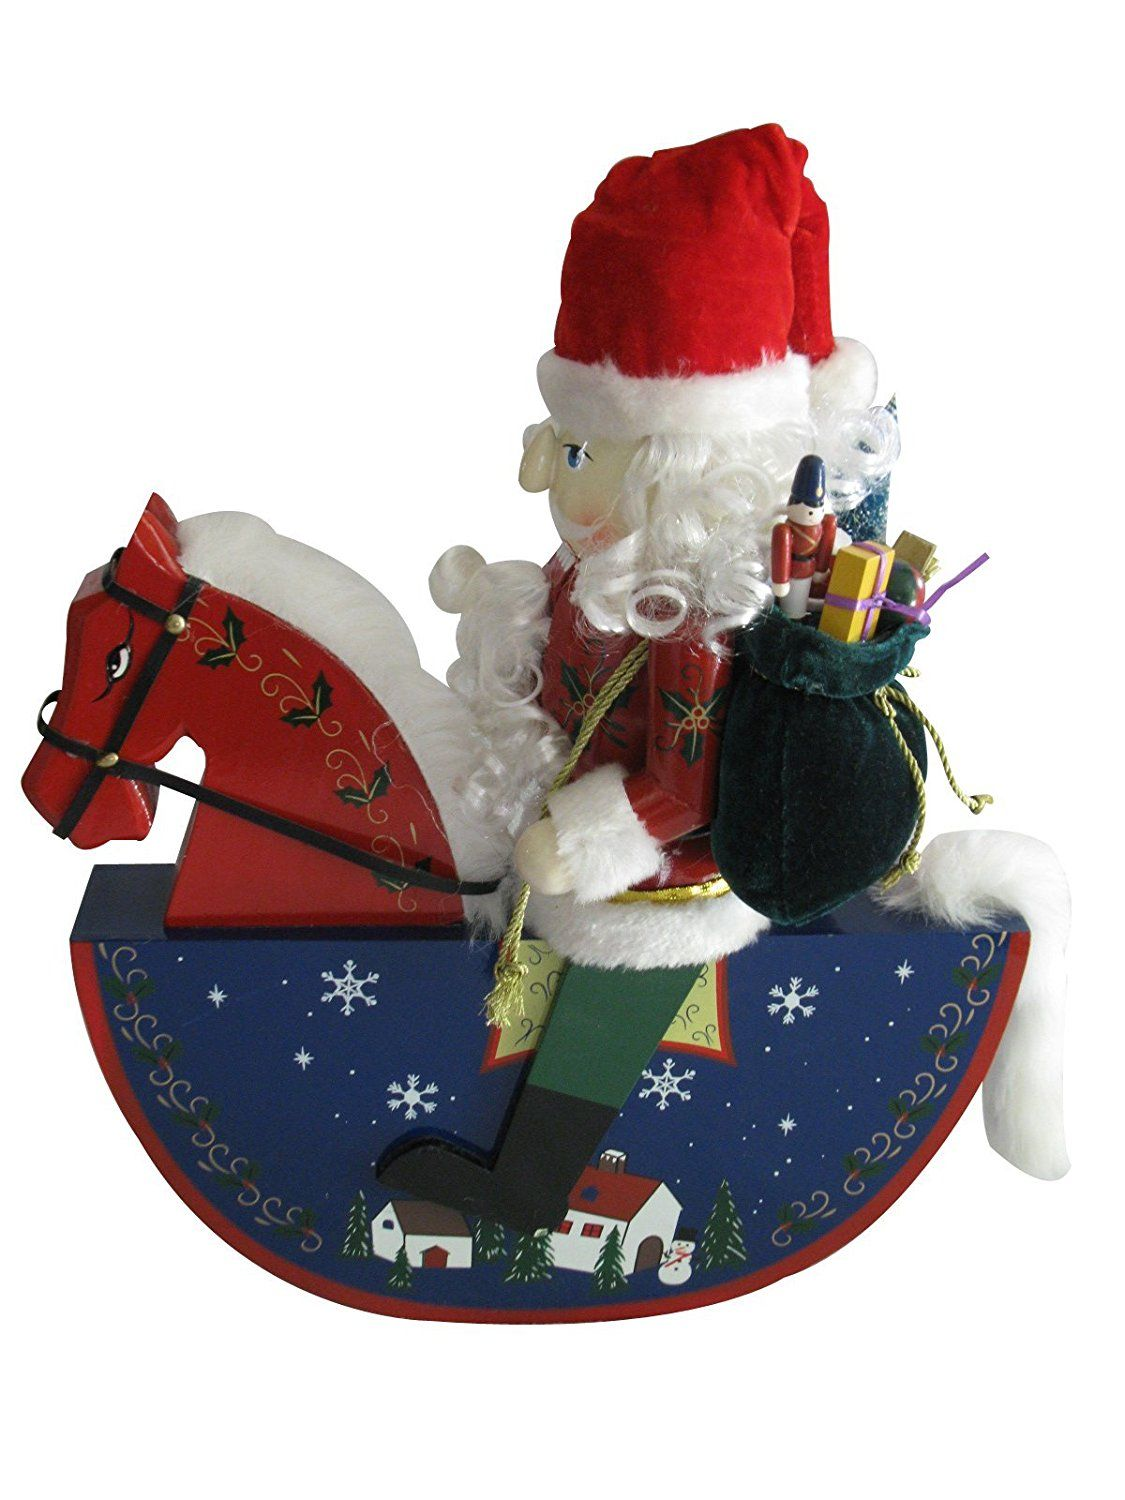 Kirkland Wooden Santa Rocking Horse 18 Inch Nutcracker Haven T You Heard That You Can Find More Wooden Santa Nutcracker Christmas Decorations Rocking Horse